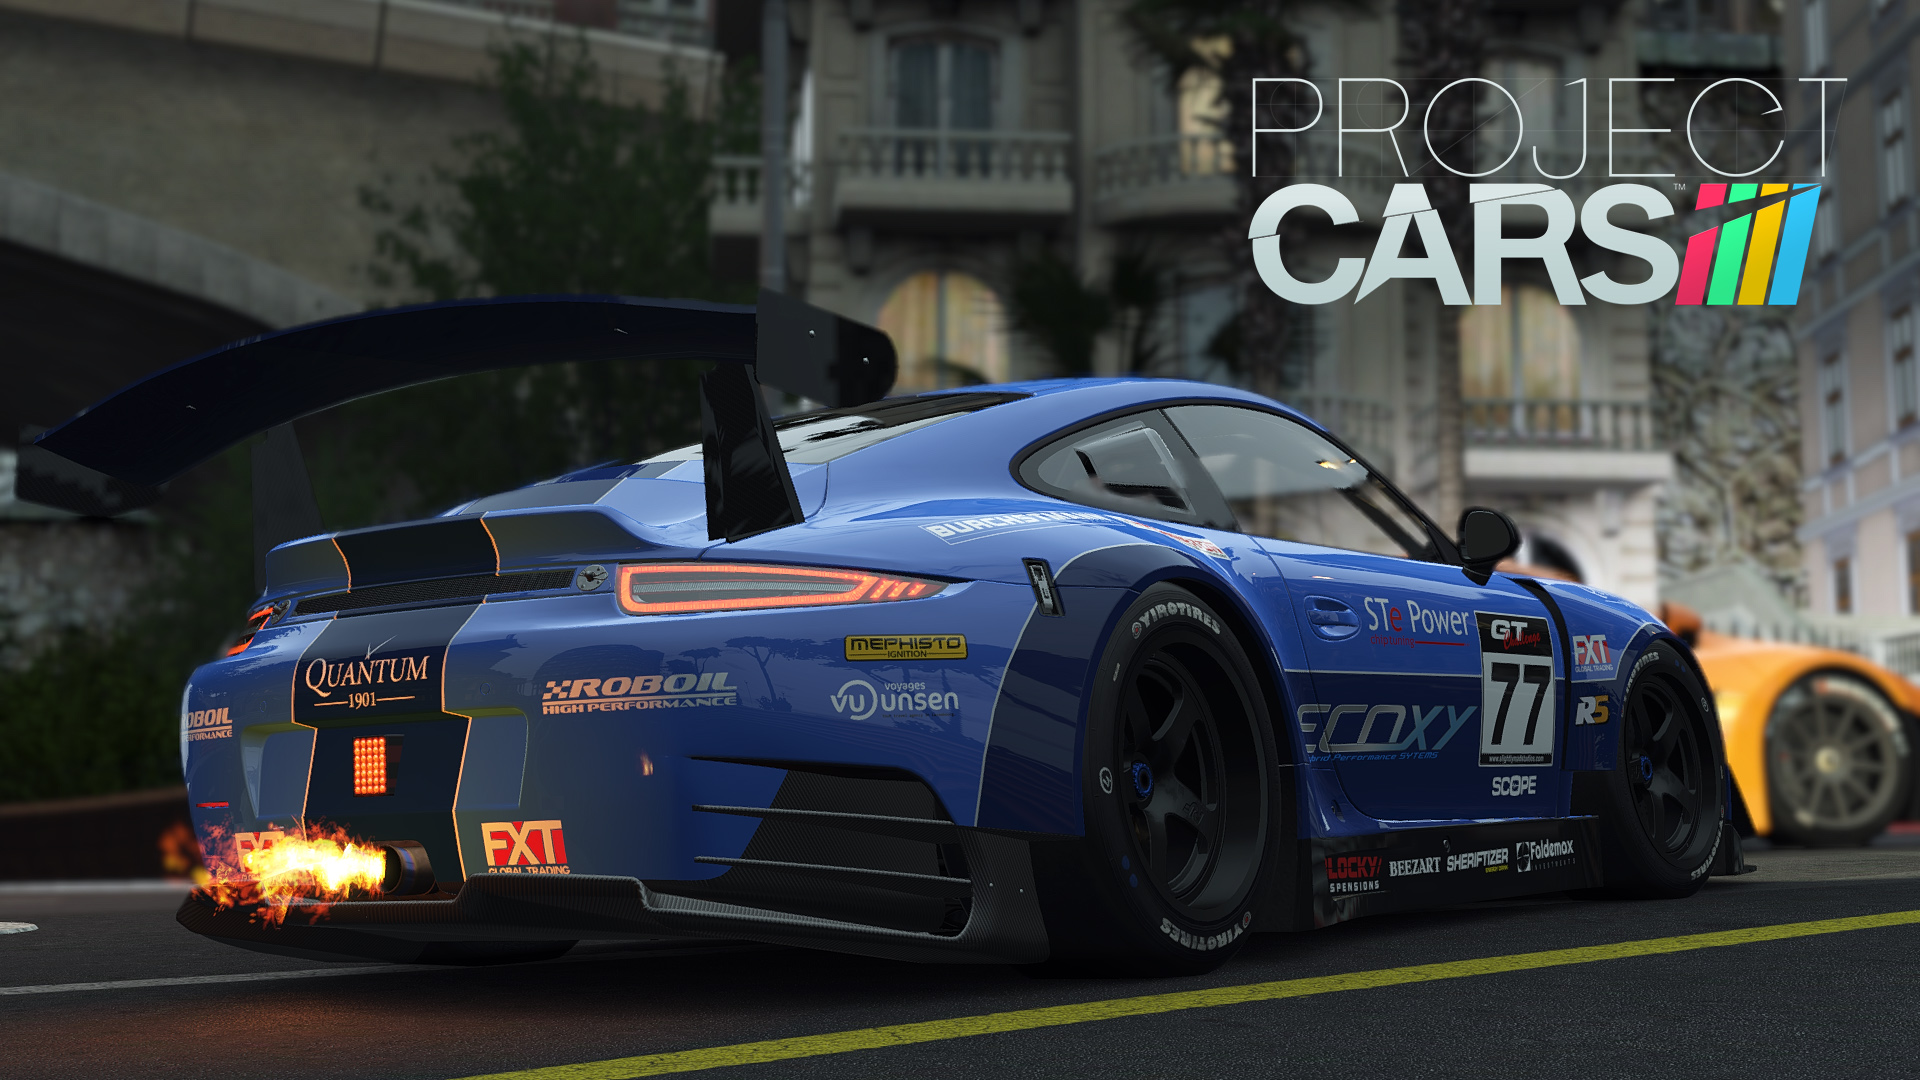 project cars file size for playstation 4 and xbox one revealed. Black Bedroom Furniture Sets. Home Design Ideas